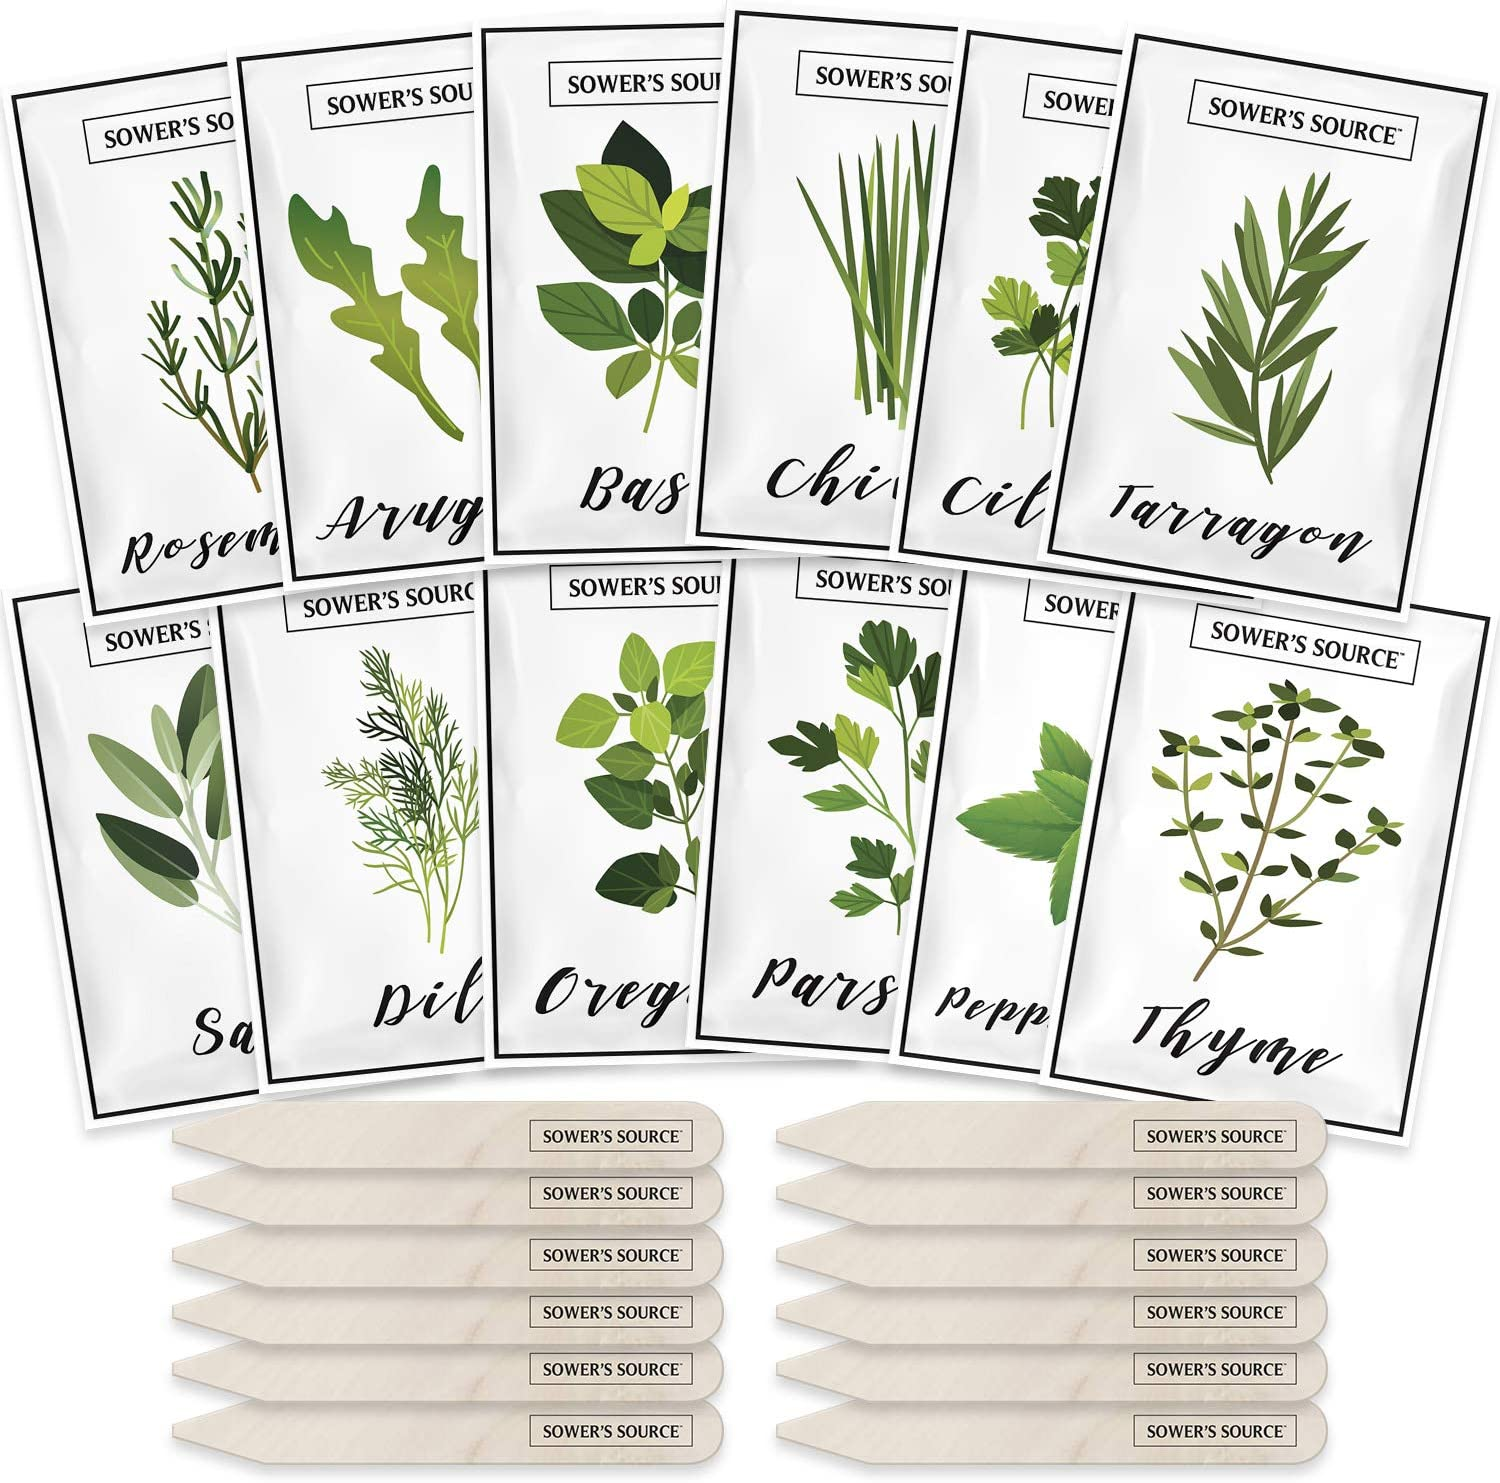 Herb Seeds for Planting – 12 Non-GMO Herb Garden Seeds for Planting Herbs: Basil Seeds, Dill, Chives, Oregano, Sage, Peppermint, Cilantro, Thyme, Rosemary, Tarragon, Parsley, Arugula